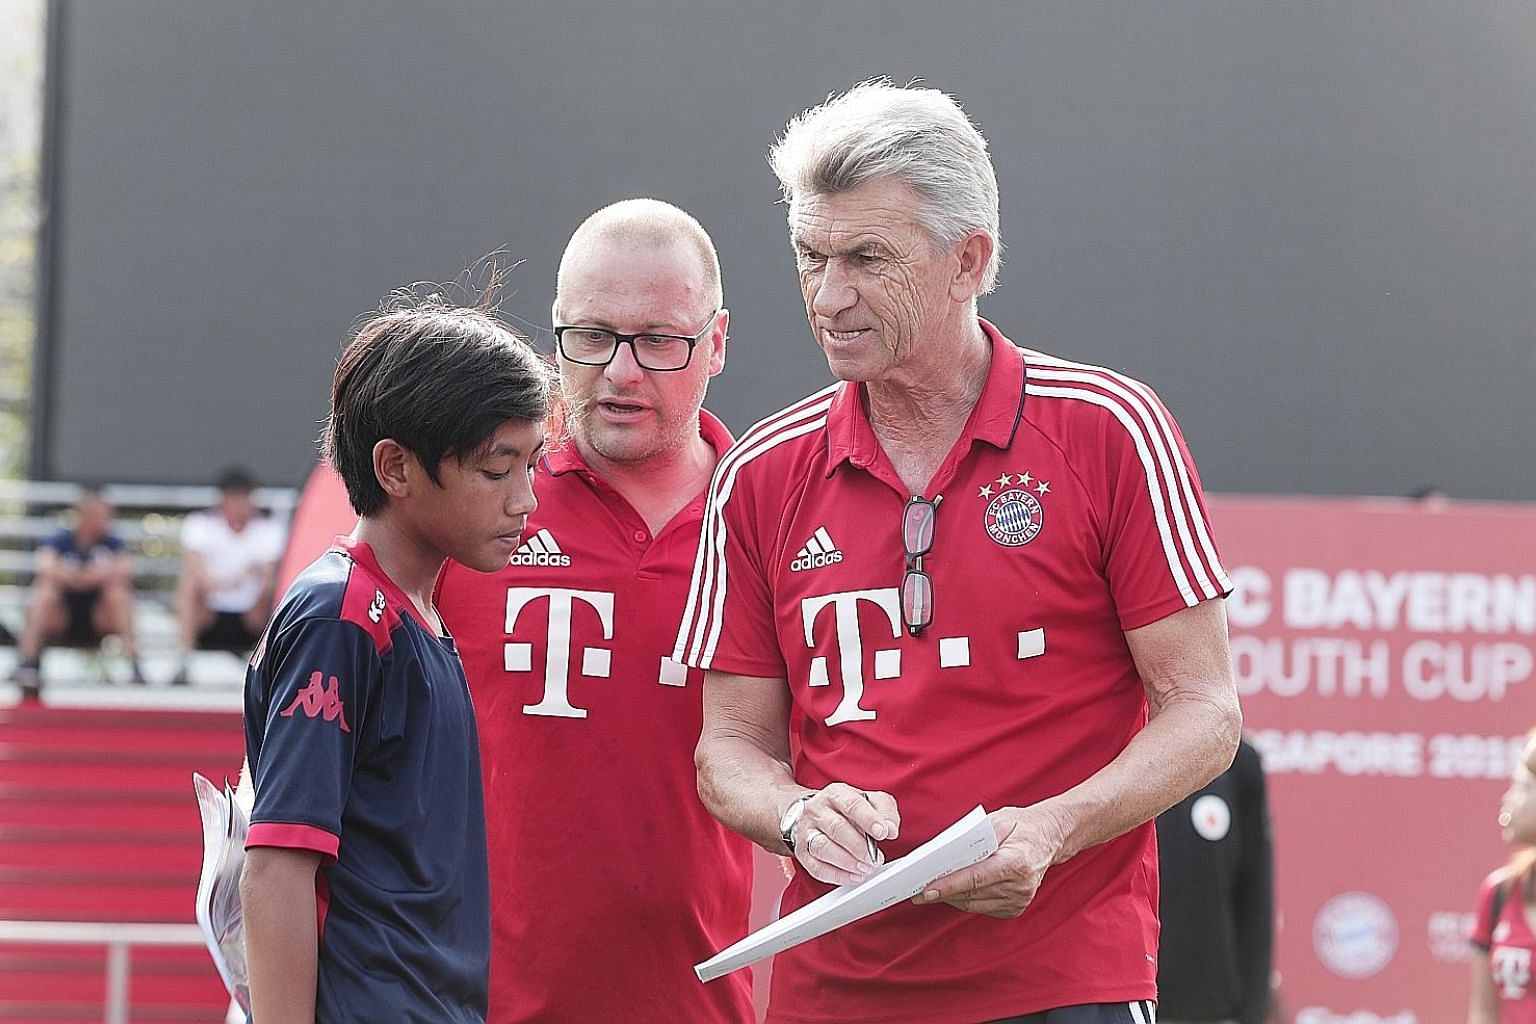 Bayern Munich great and World Cup winner Klaus Augenthaler (right), together with Sebastian Dremmler, head coach of Bayern's international programme, giving Nur Muhammad Asis Ijilrali some feedback at the FC Bayern Youth Cup Singapore finals yesterda